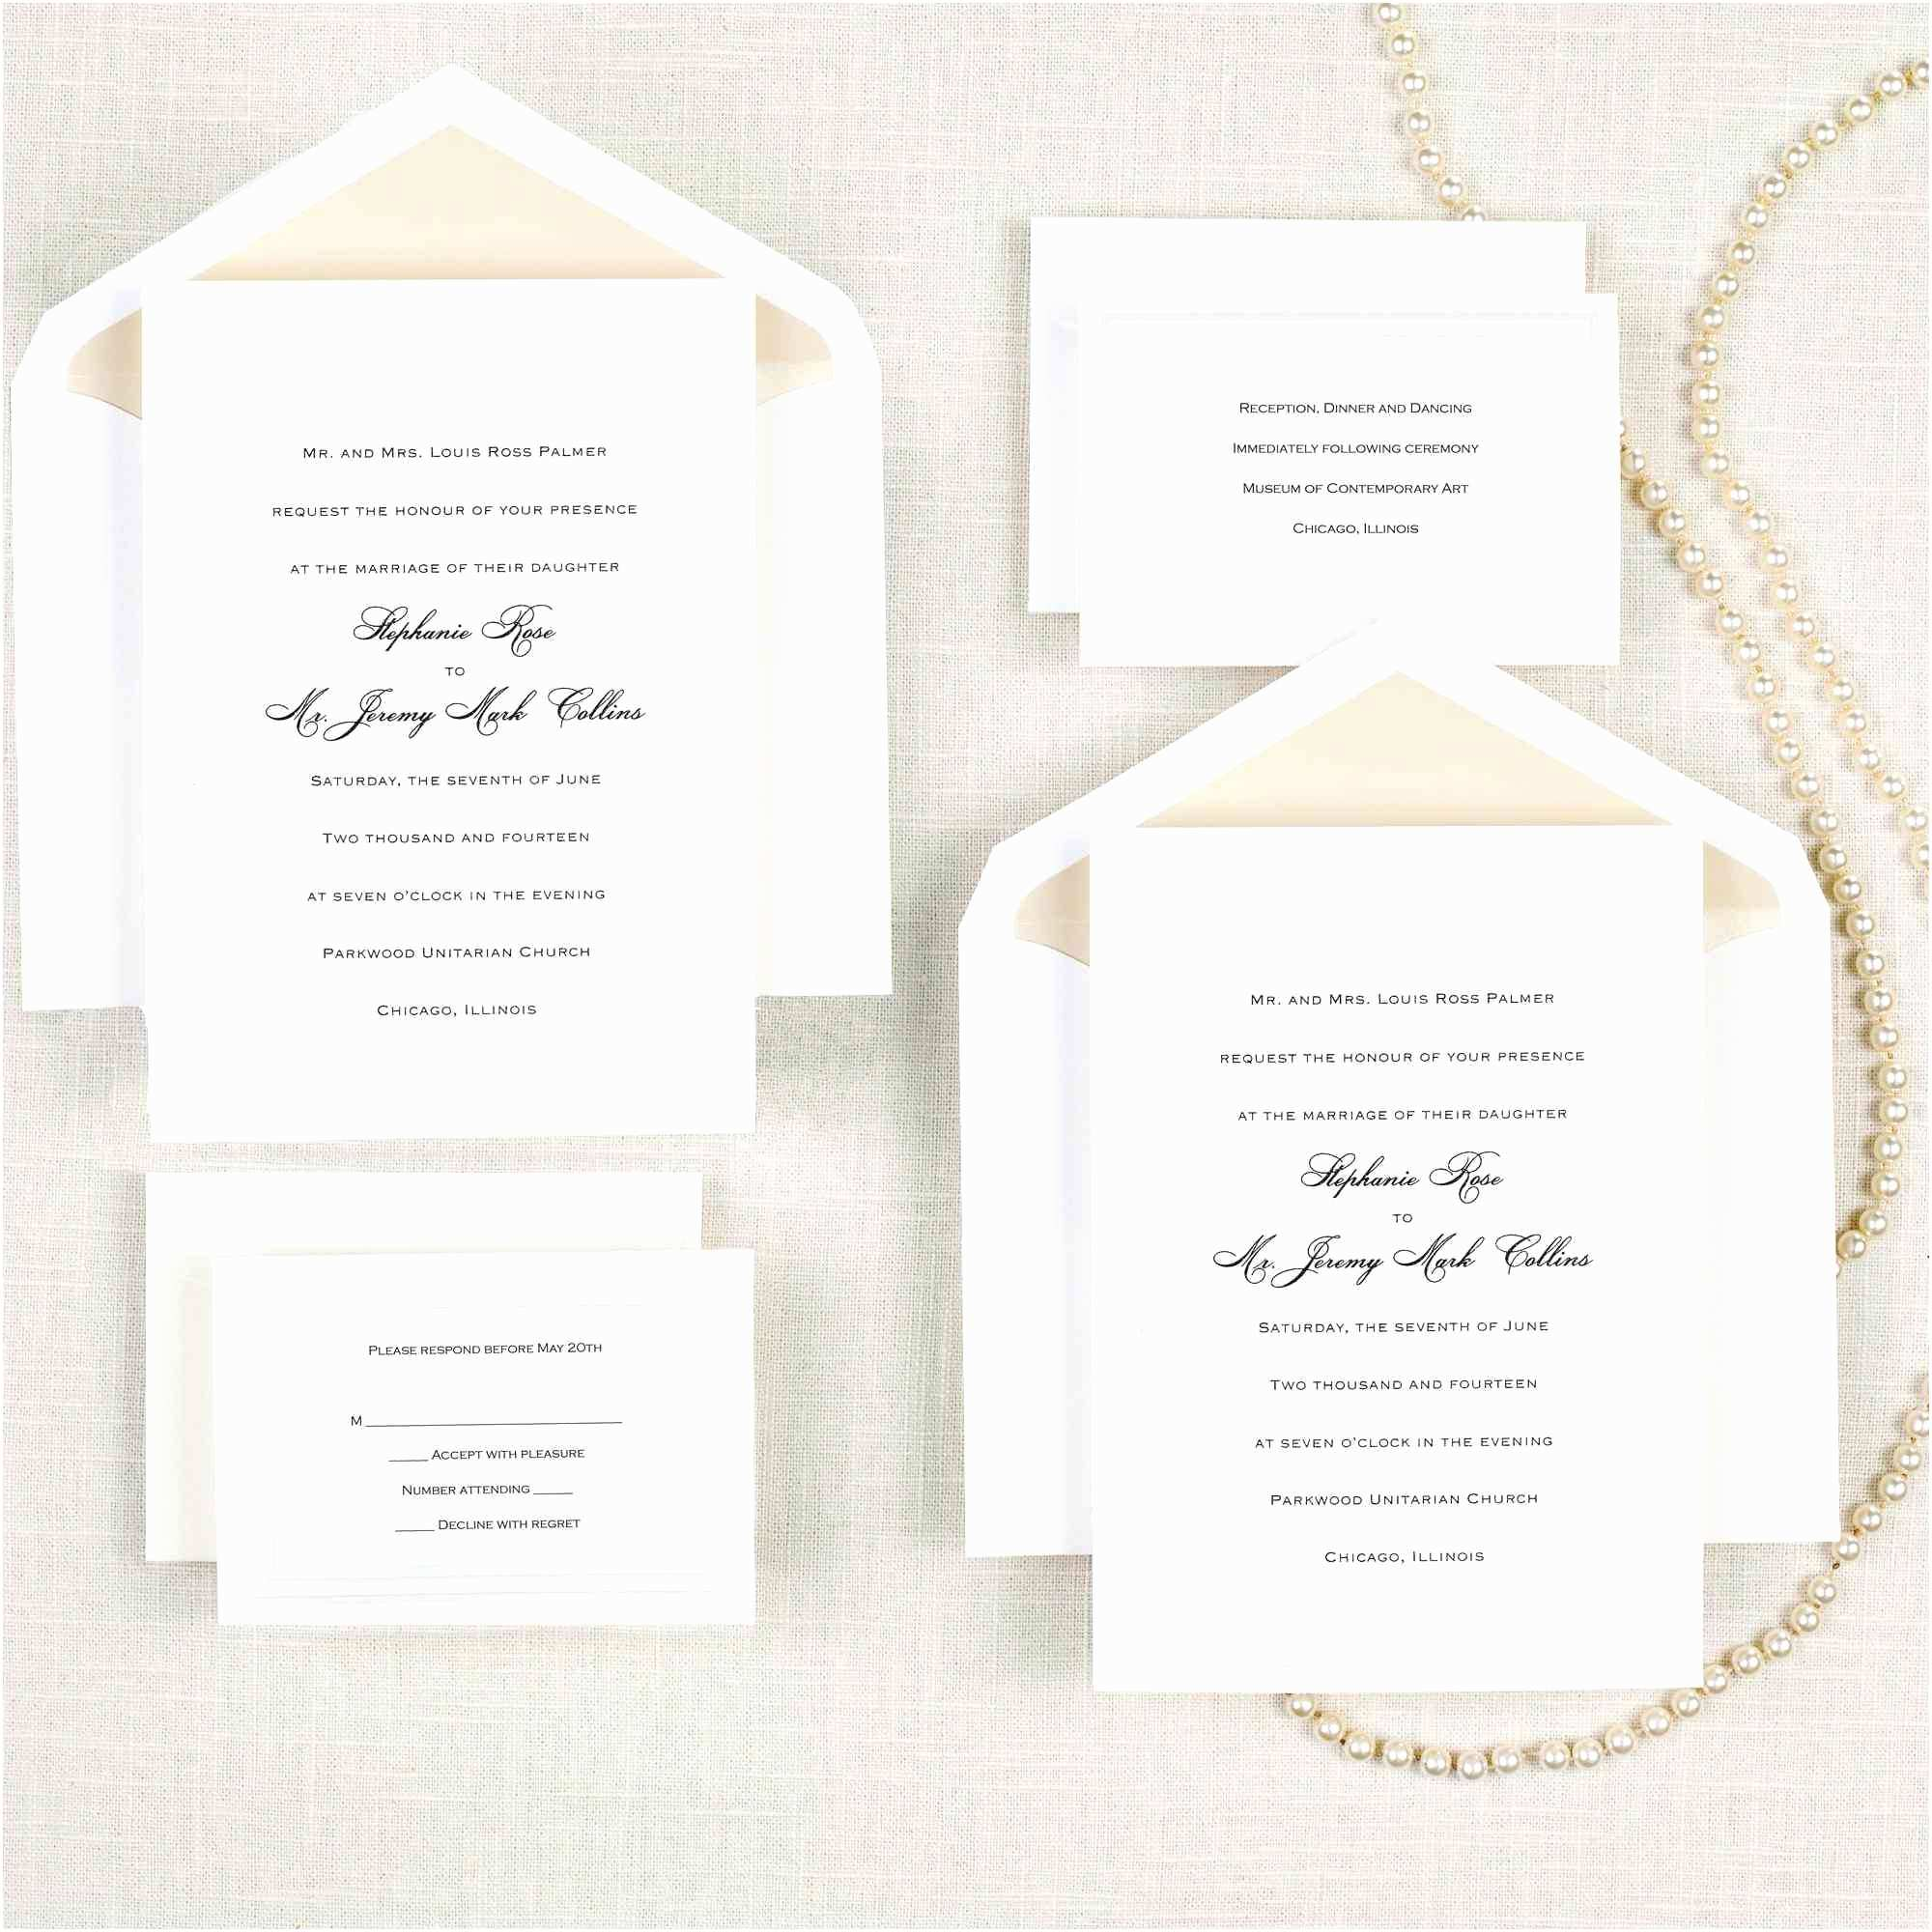 Affordable Pocket Wedding Invitations Wedding Pocket Invitations Elegant Cheap Wedding